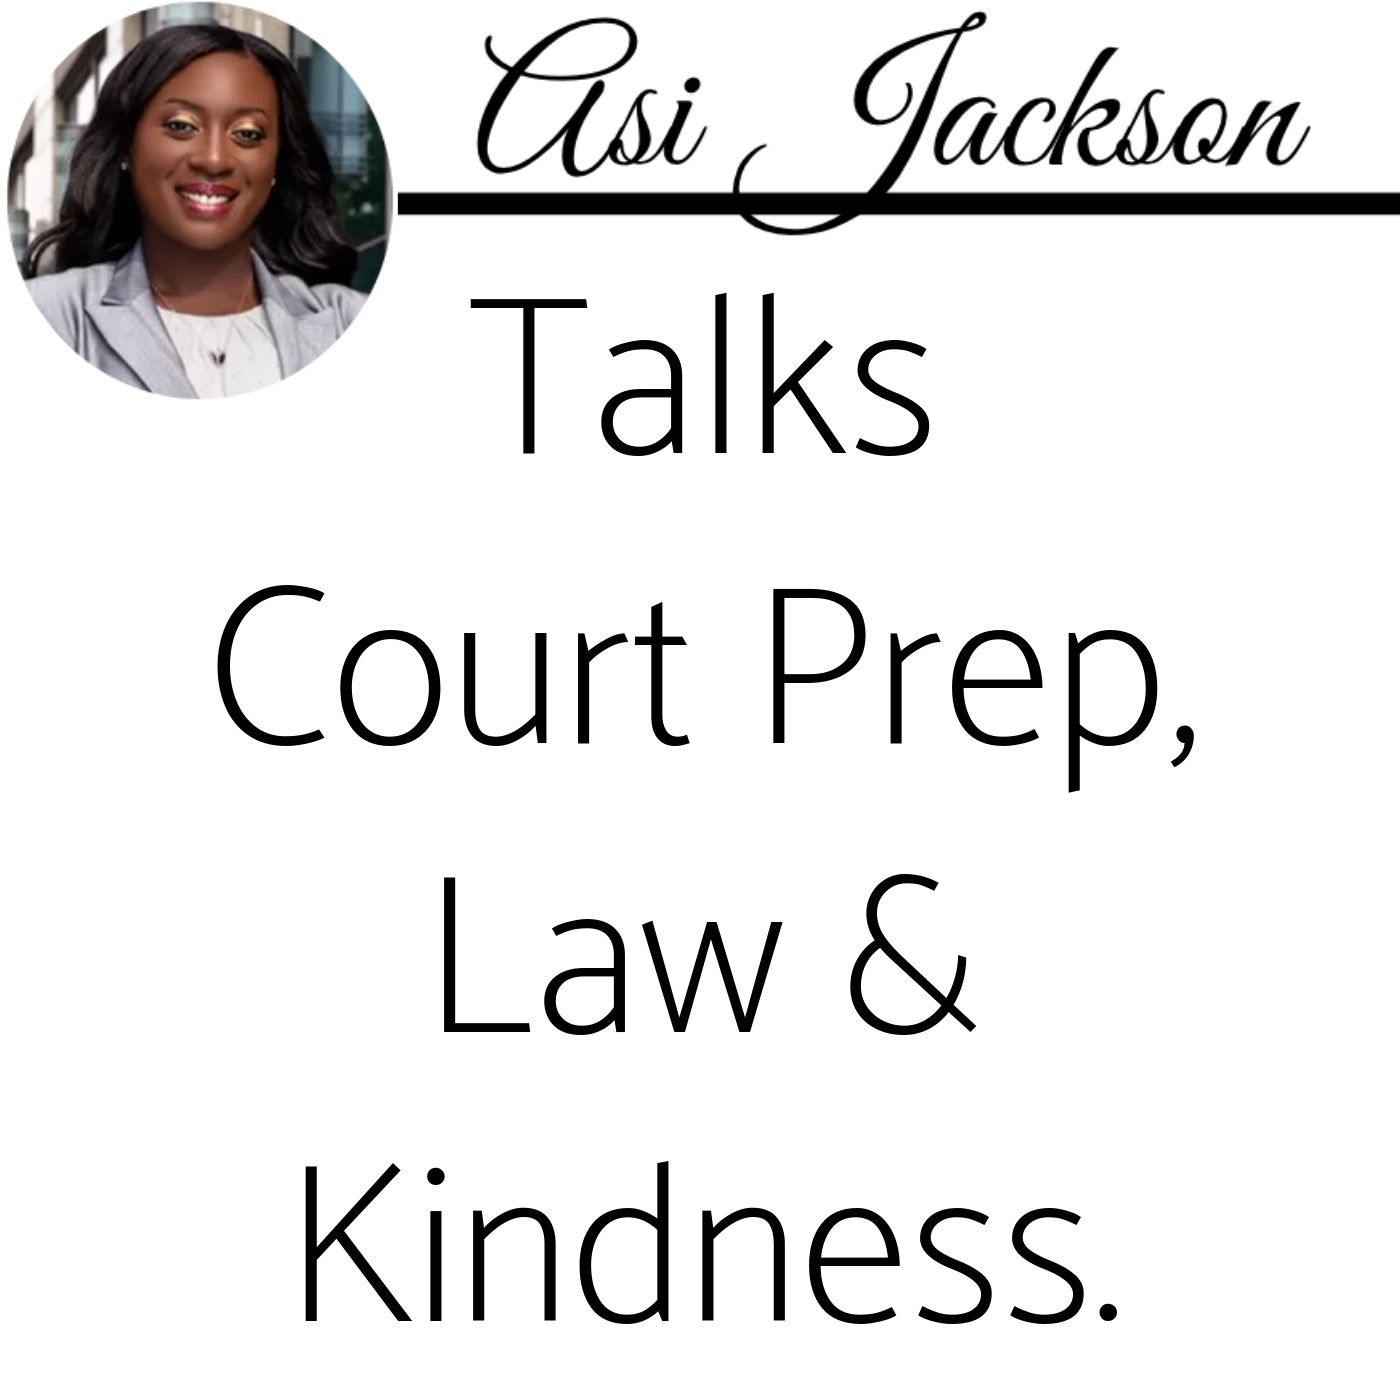 Part 3 of 3: Asi Jackson Talks Court Prep, Law & Kindness.